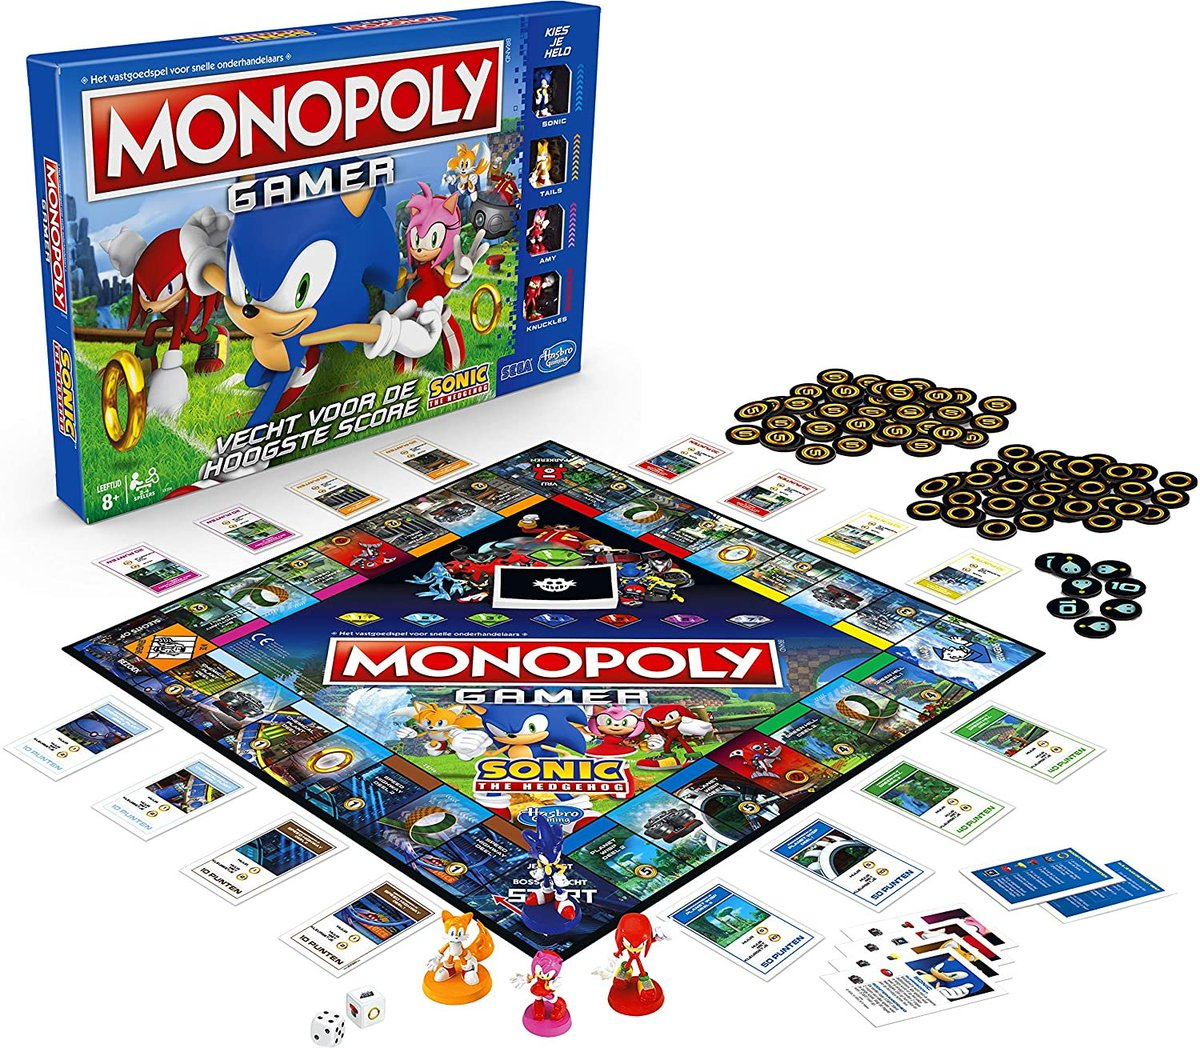 Monopoly Gamer Sonic The Hedgehog Edition Board Game for Kids Ages 8 & Up  Only $17.49!!  2